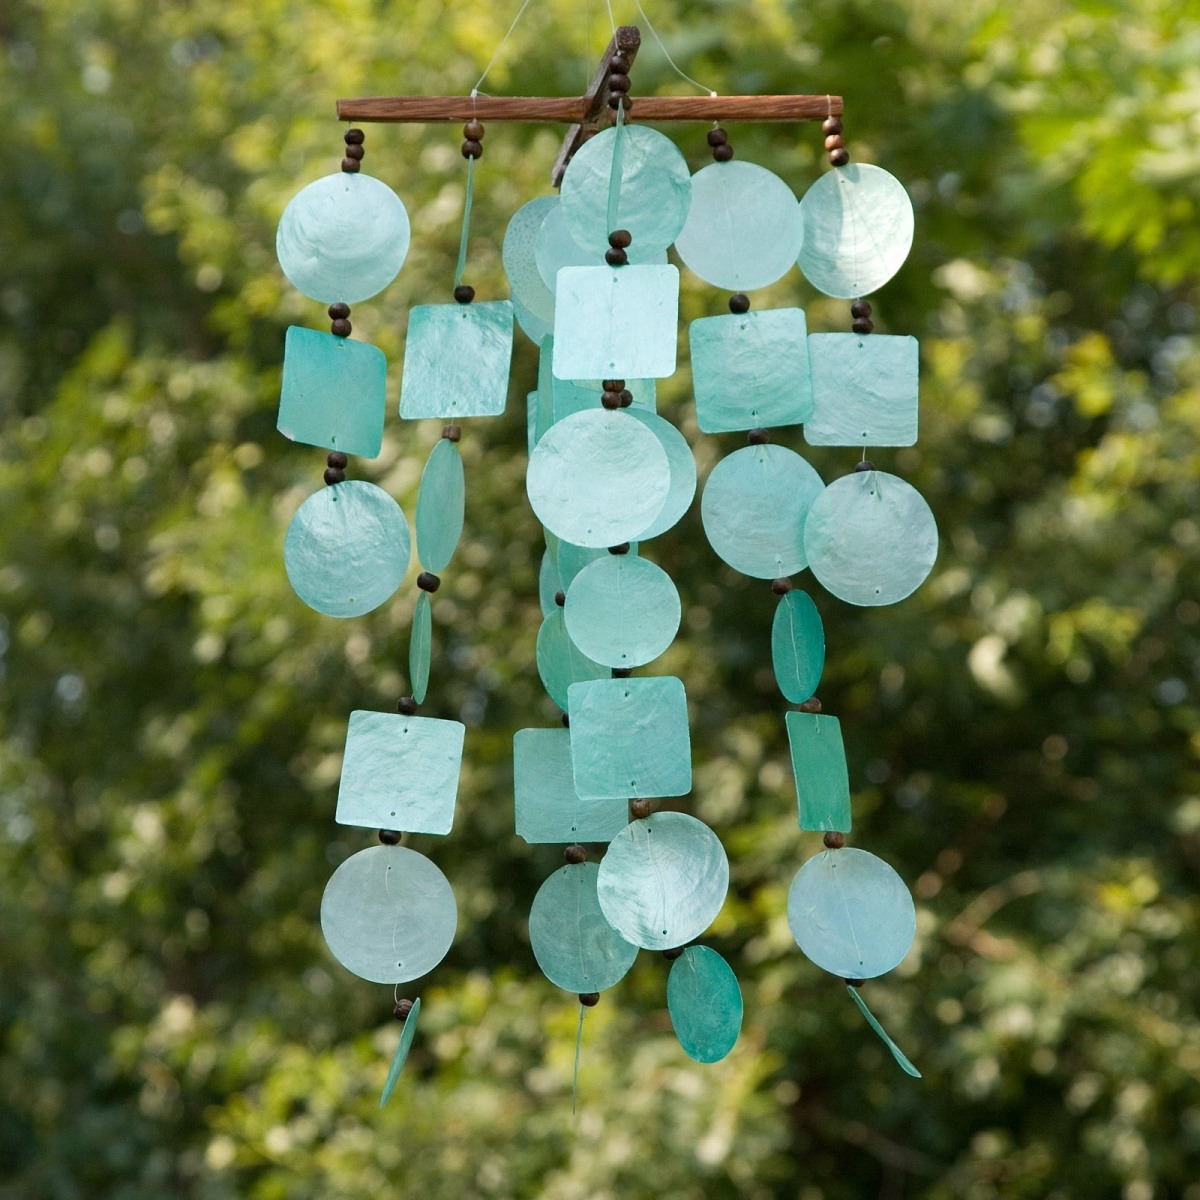 5 Ideas for DIY Windchimes